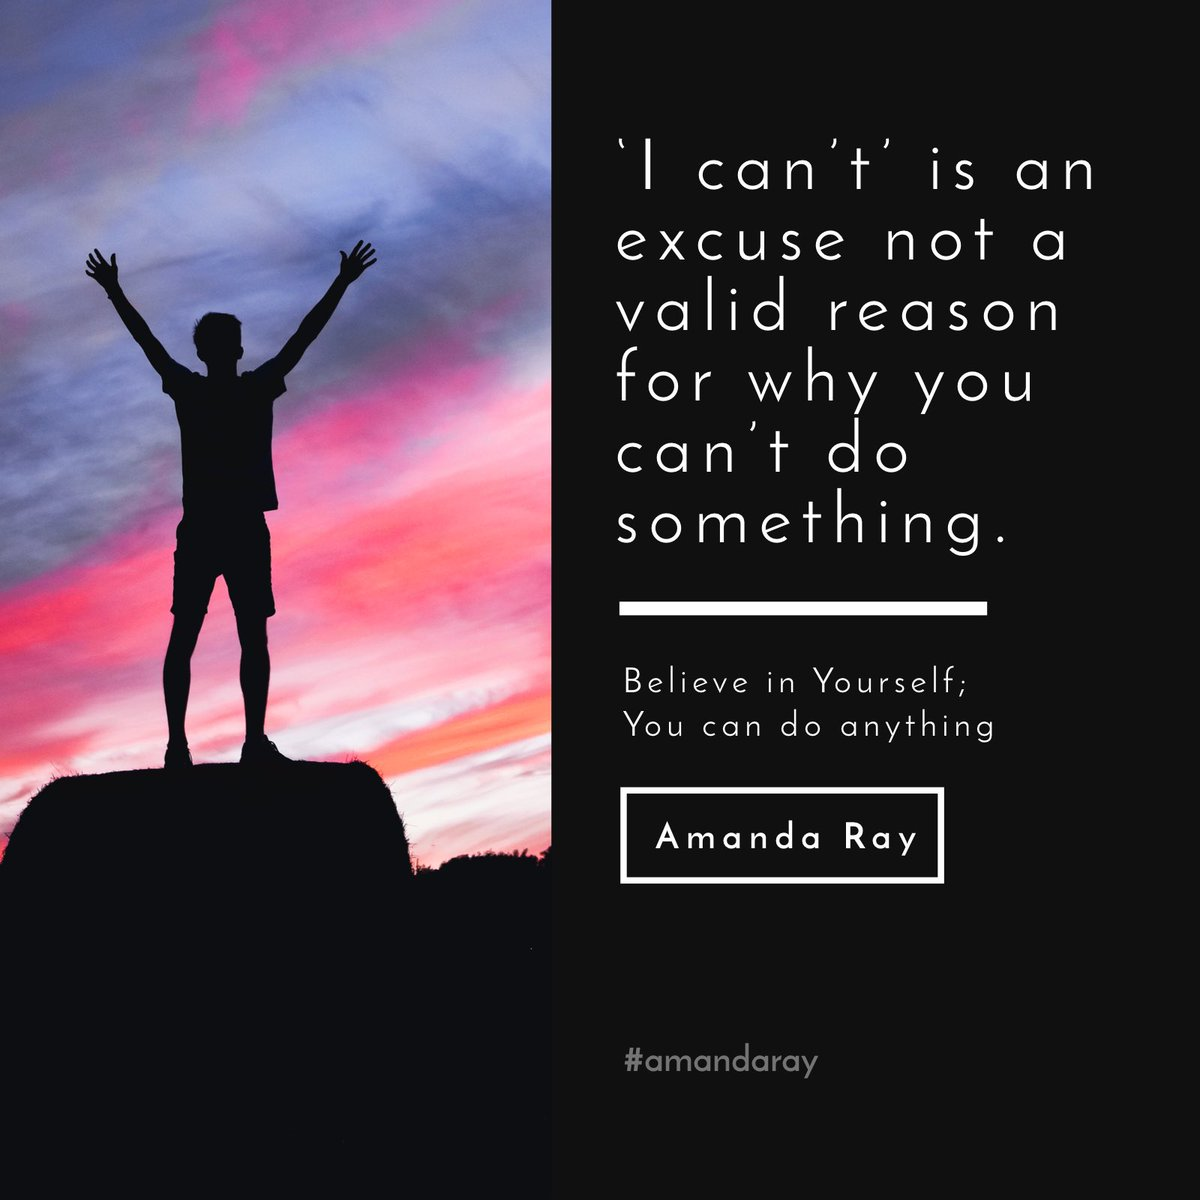 'I can't' is an excuse not a valid reason for why you can't do something. #amandaray #BelieveInYourself #SaturdayMotivation #MotivationalQuotes #quoteoftheday @NevilleGaunt @NeurozoInnovat1 @AdamRogers2030 @Inspireu2Action @stanleychen0402 @Miriam_McGuirk @fintanomahony